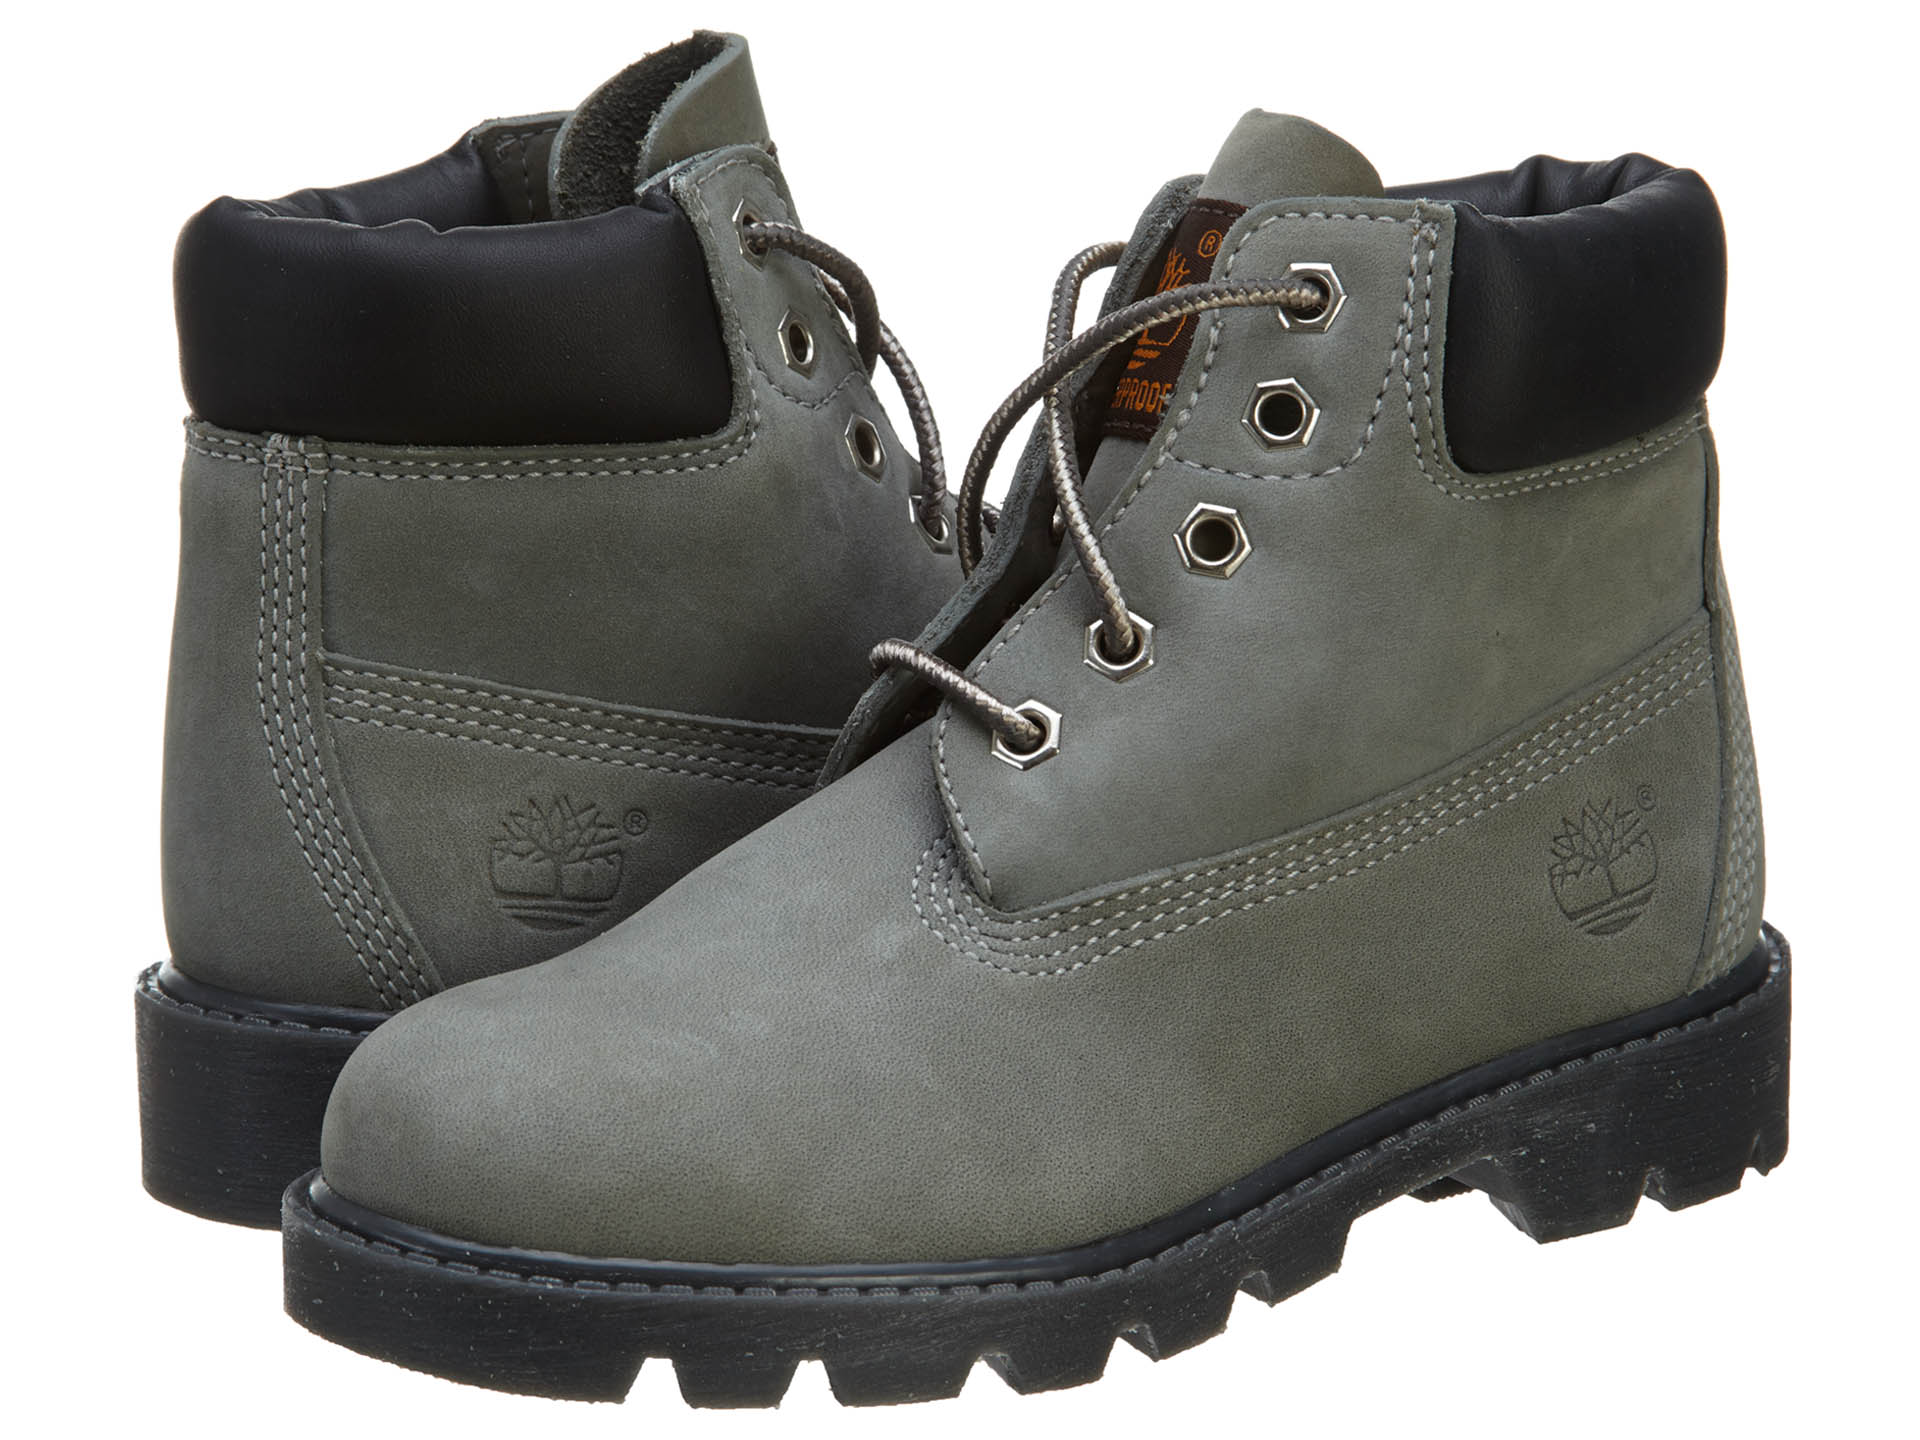 Timberland Yth Prem Boot Steel Big Kids Style : 10703 by